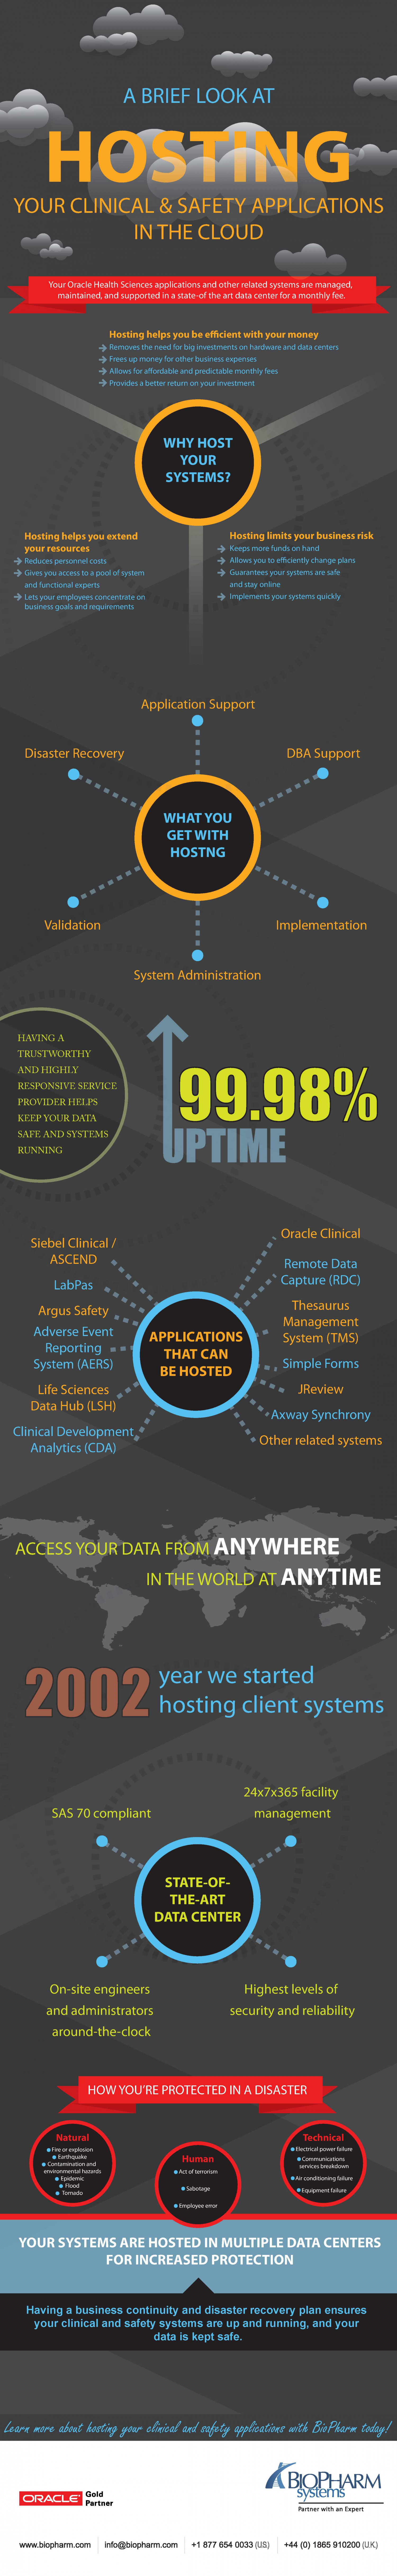 A Brief Look at Hosting Your Clinical and Safety Applications in the Cloud Infographic